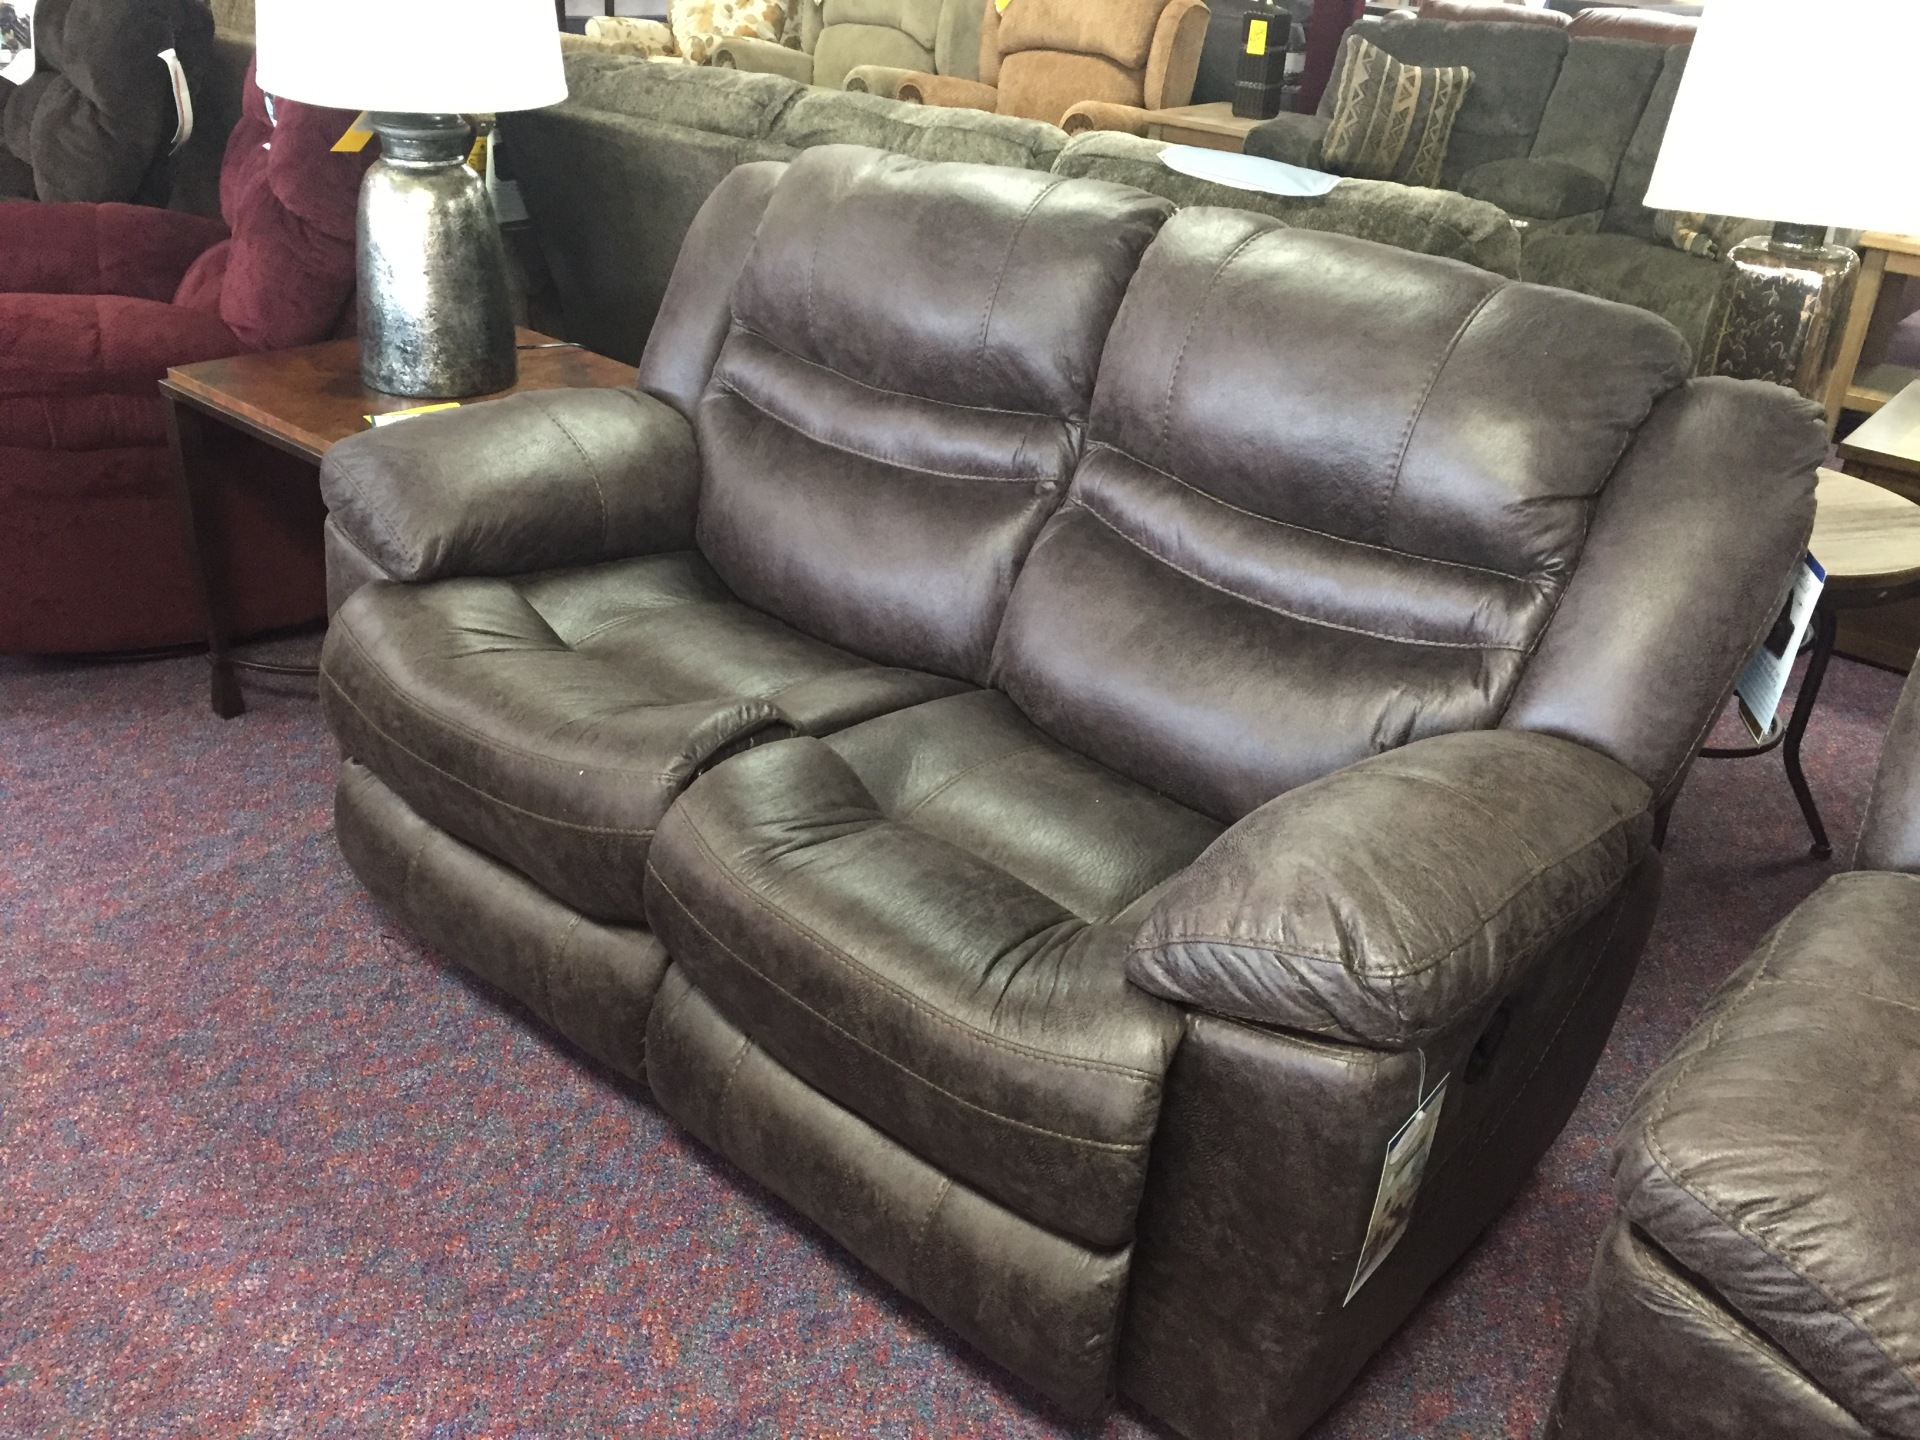 Catnapper Valiant Rocking/ Reclining Love seat- $1149.95